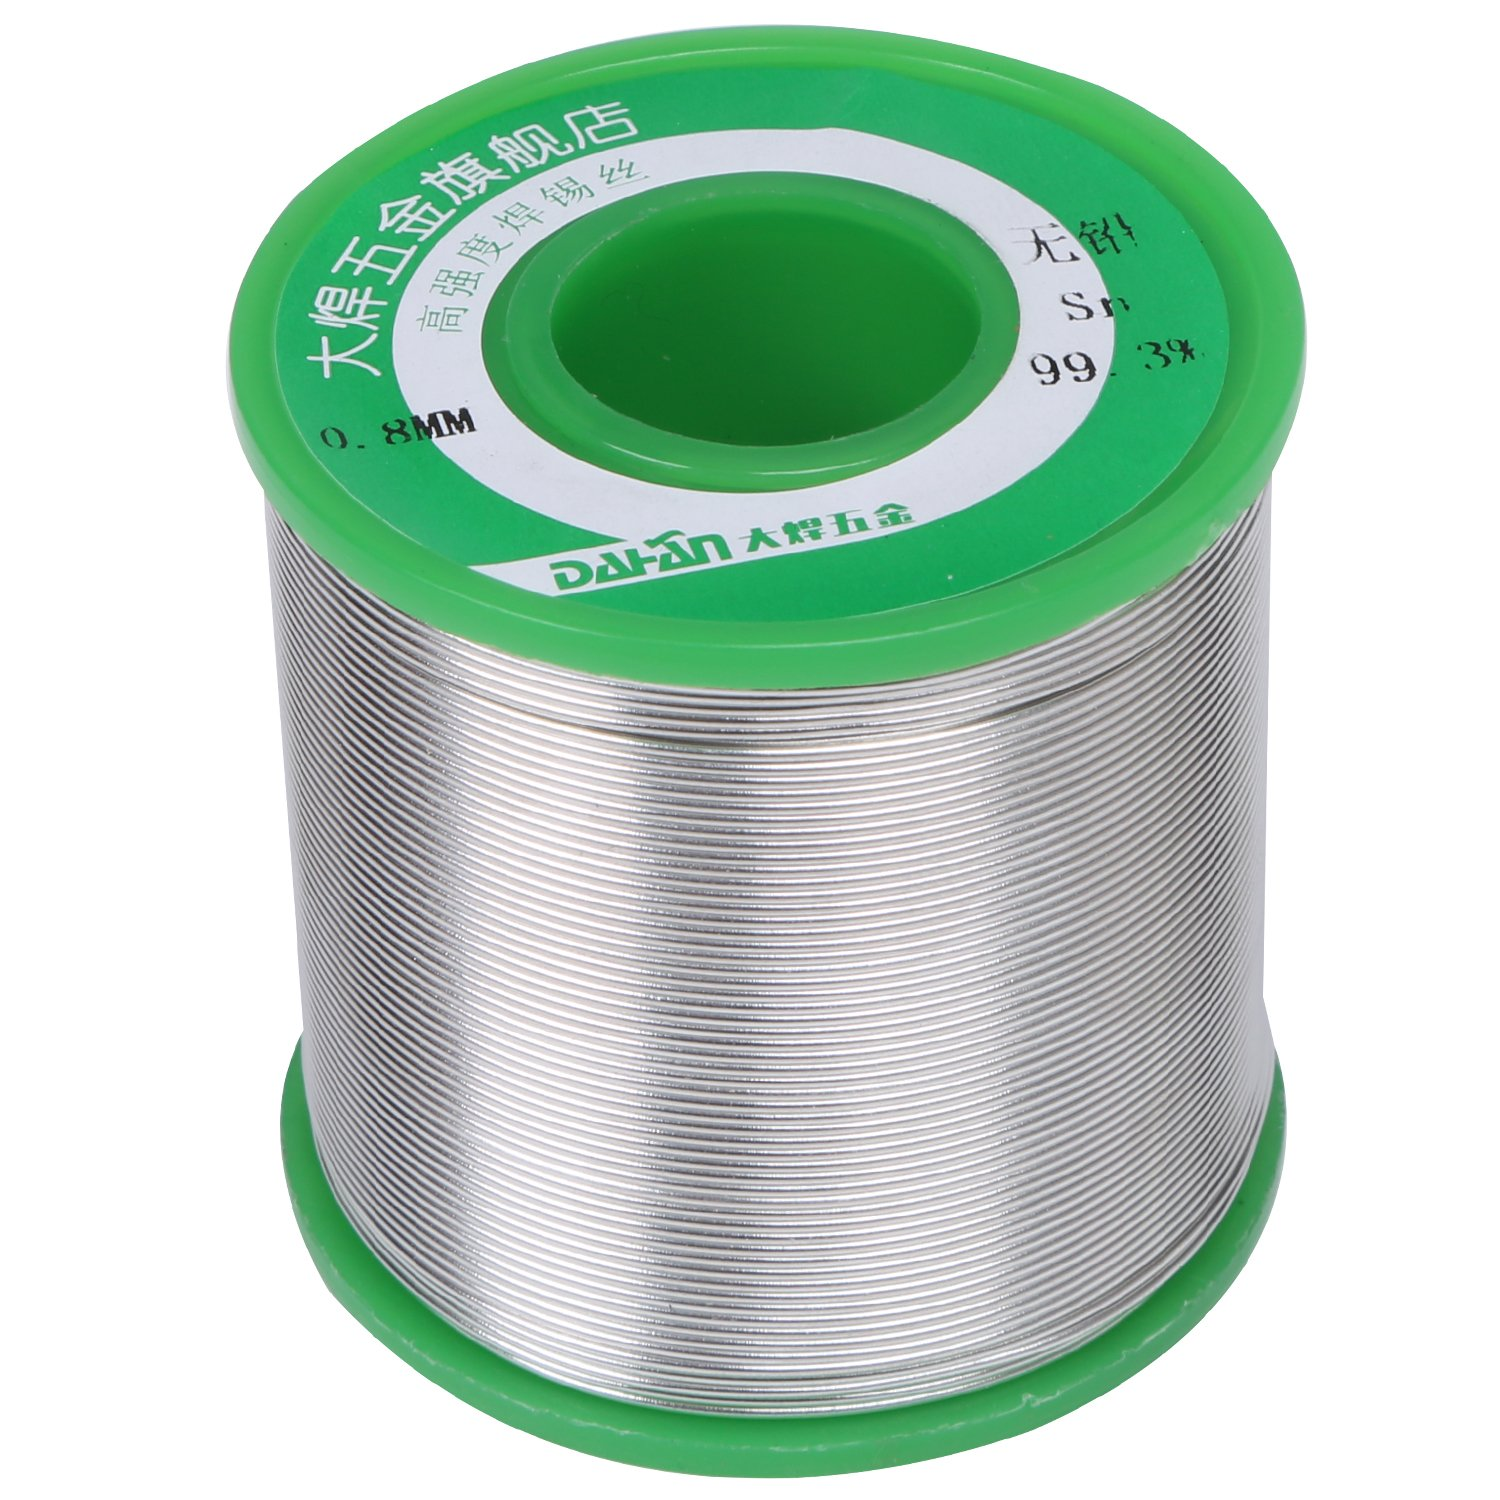 DAHAN 1 Pound Lead Free Solder Wire (Sn99.3 Cu0.7) with Rosin Core for Jewelry Electronics Electrical Repair Soldering and DIYs (Diam: 0.5mm/0.02'', 1 pound)